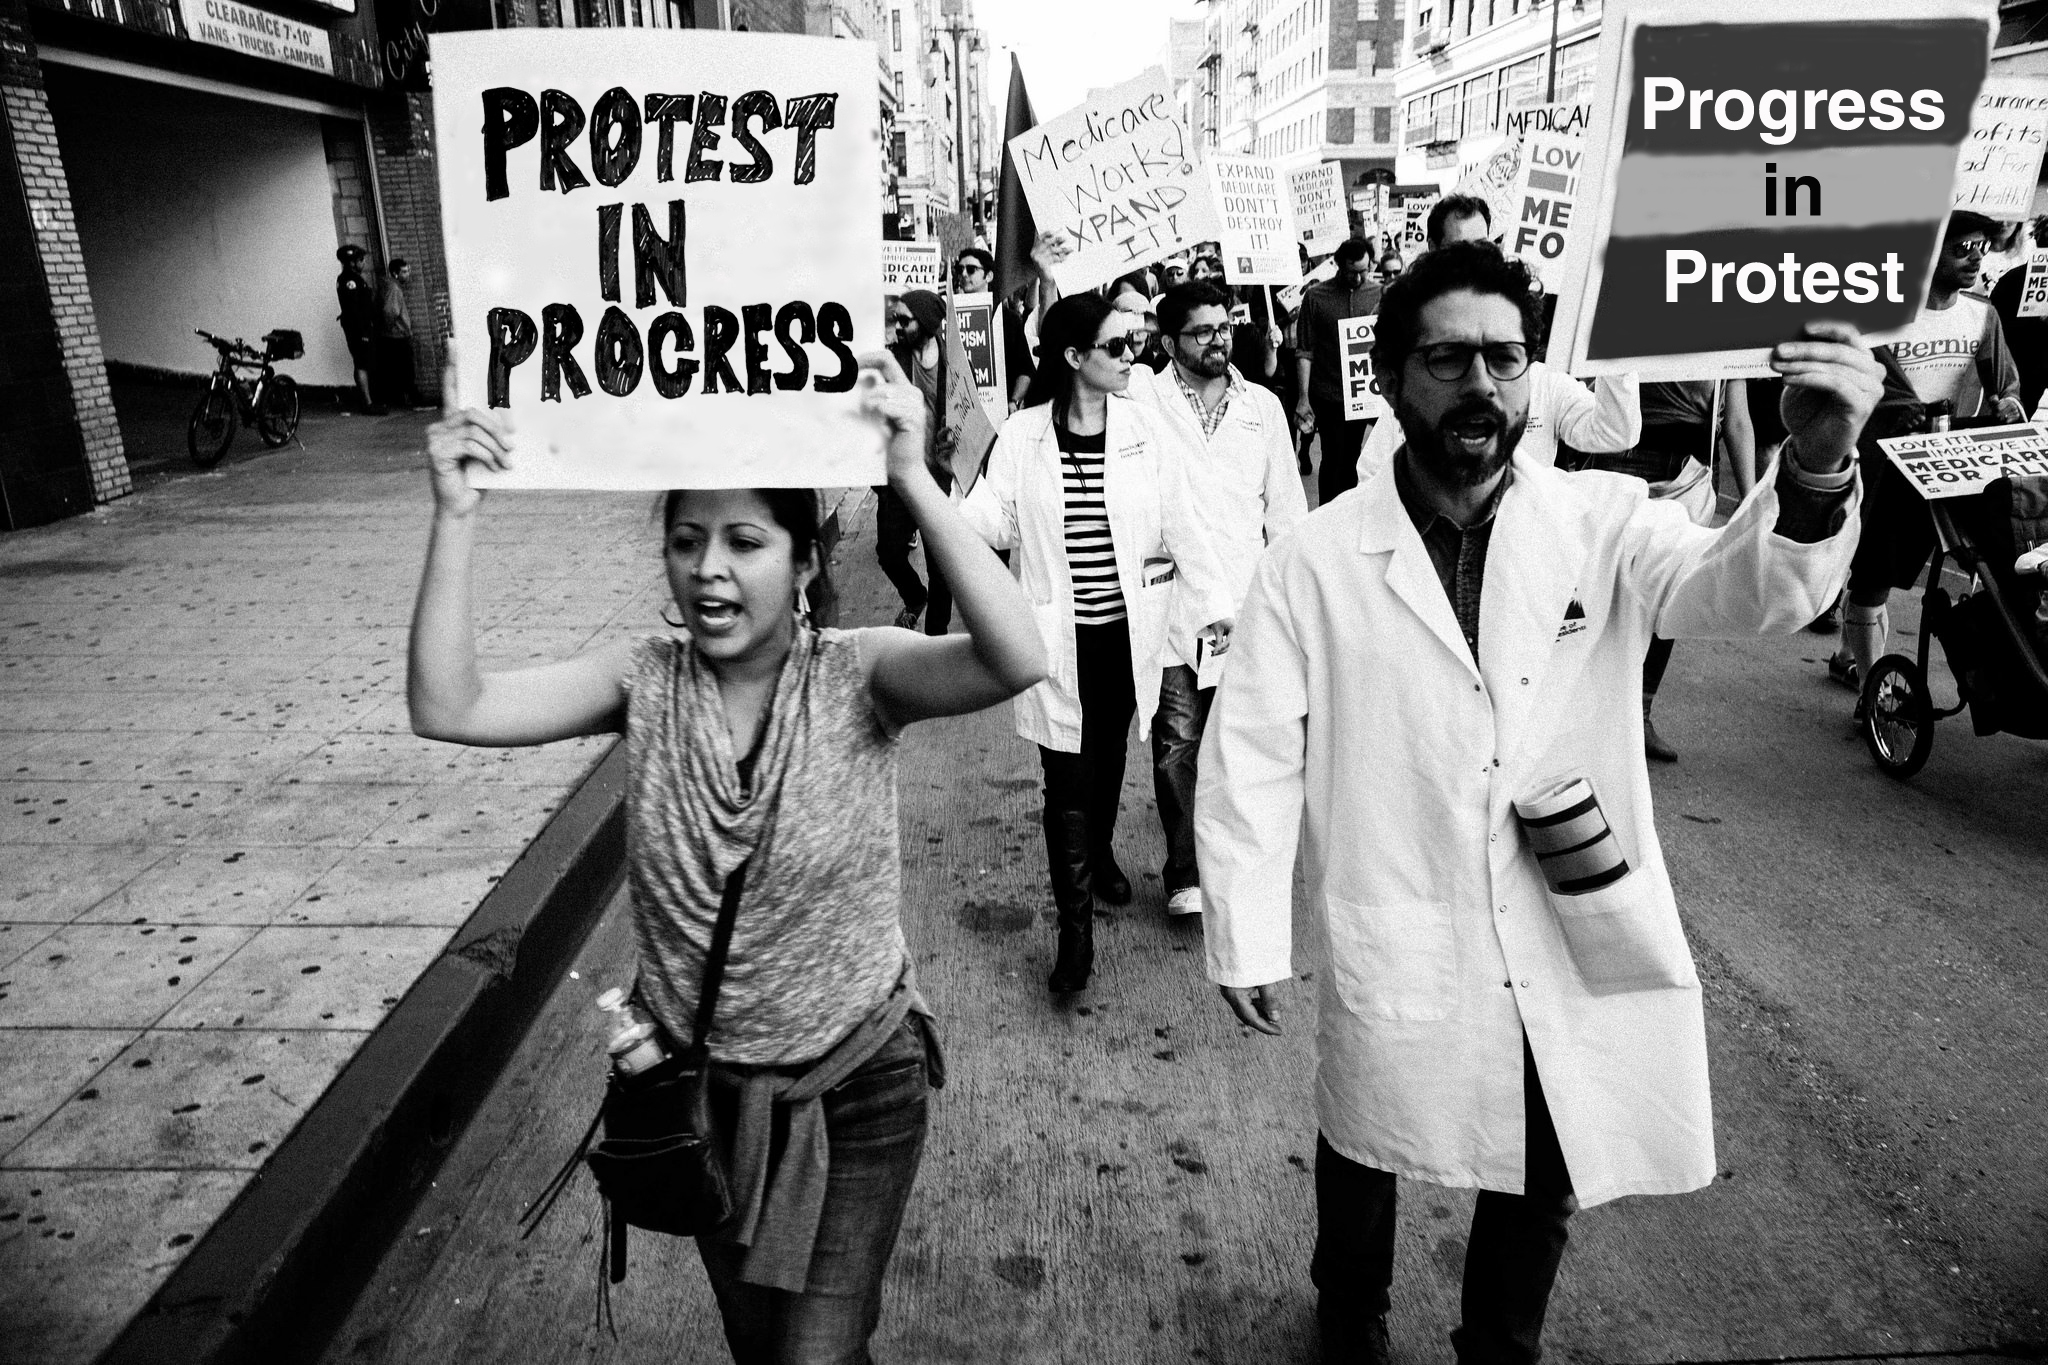 Protest Cover Image